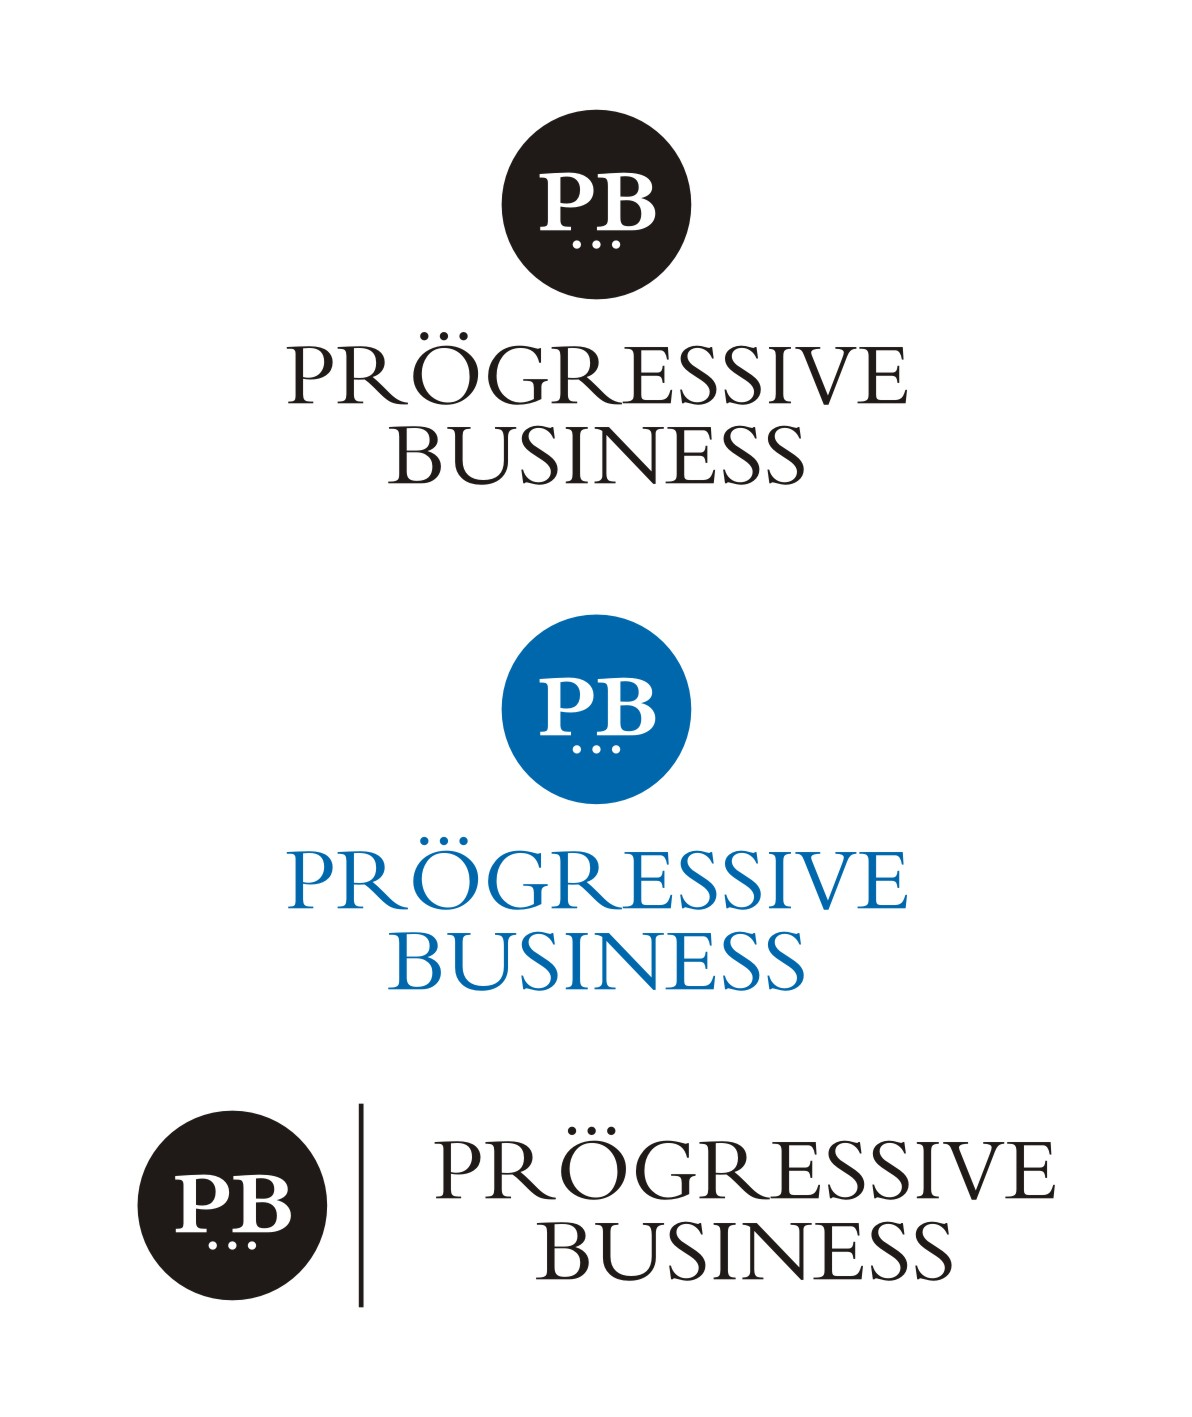 Logo Design by Spider Graphics - Entry No. 142 in the Logo Design Contest Captivating Logo Design for Progressive Business.